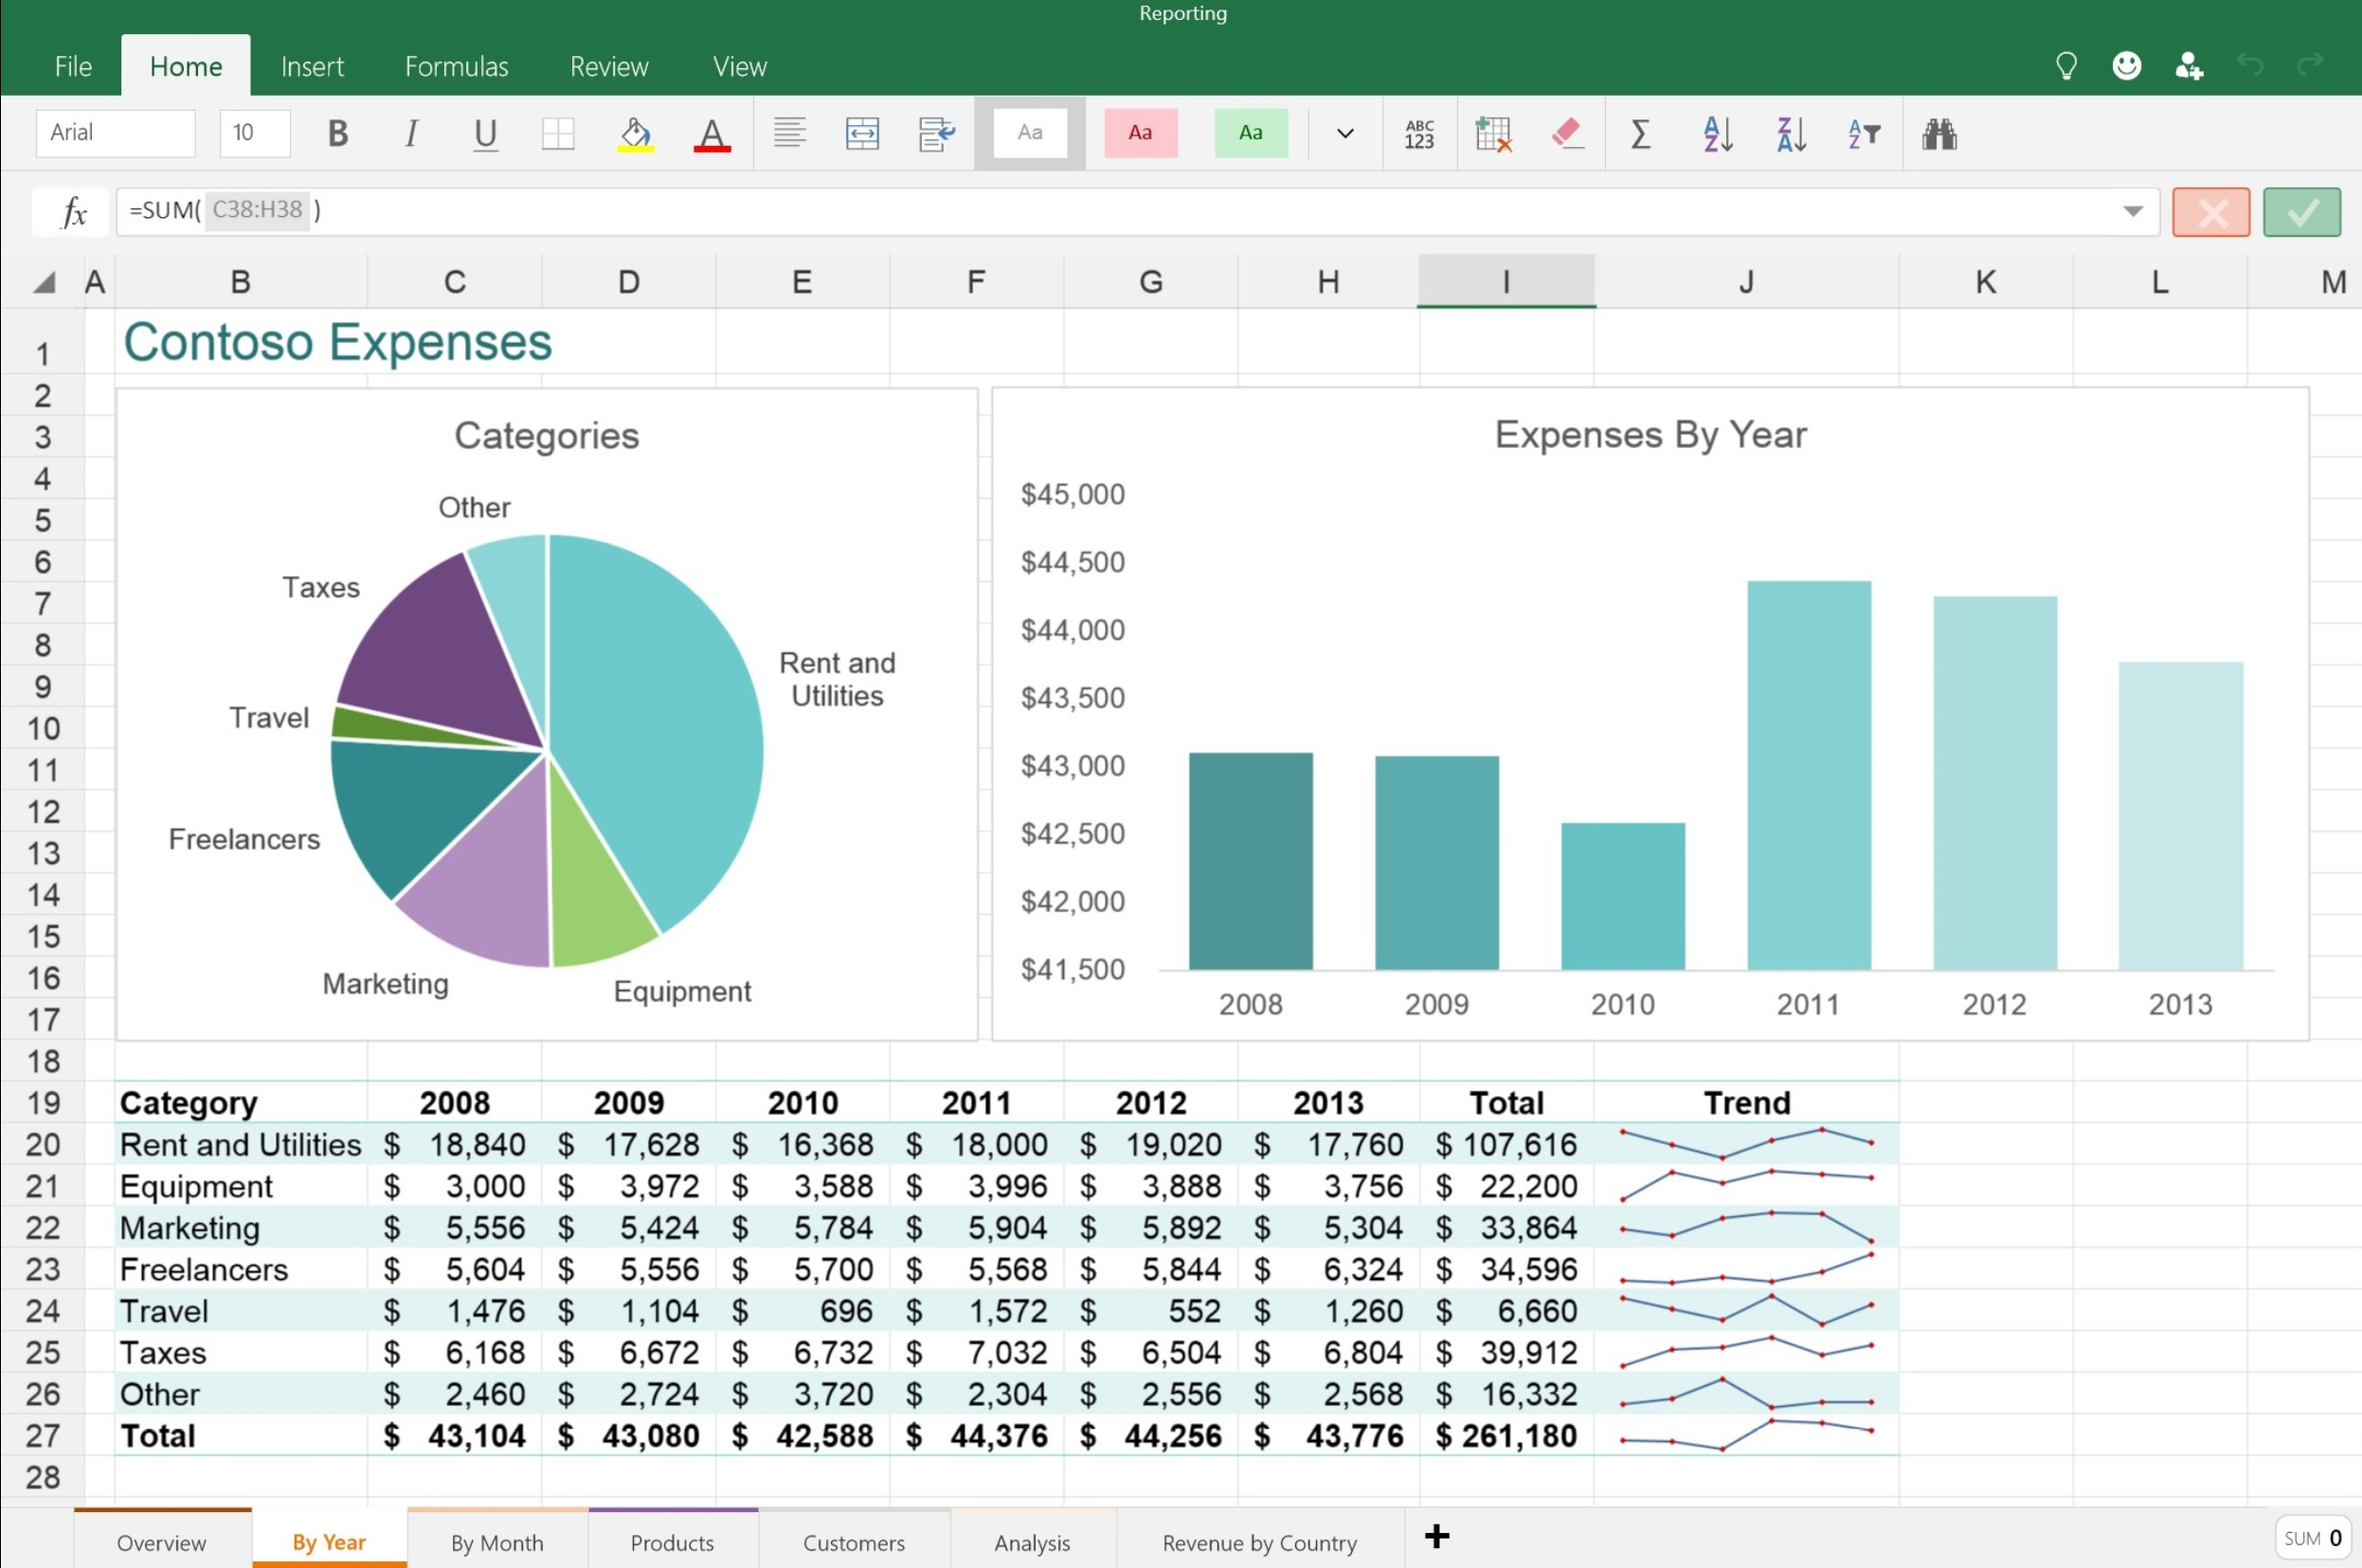 Ediblewildsus  Surprising Features Available In The New Word Excel And Powerpoint Apps For  With Exciting Excel Touch App  With Charming Spell Checker In Excel Also Microsoft Excel  Free In Addition Excel Spreadsheet Format And Sparklines In Excel  As Well As Compounding Interest Formula In Excel Additionally Make Line Graph Excel From Mspowerusercom With Ediblewildsus  Exciting Features Available In The New Word Excel And Powerpoint Apps For  With Charming Excel Touch App  And Surprising Spell Checker In Excel Also Microsoft Excel  Free In Addition Excel Spreadsheet Format From Mspowerusercom